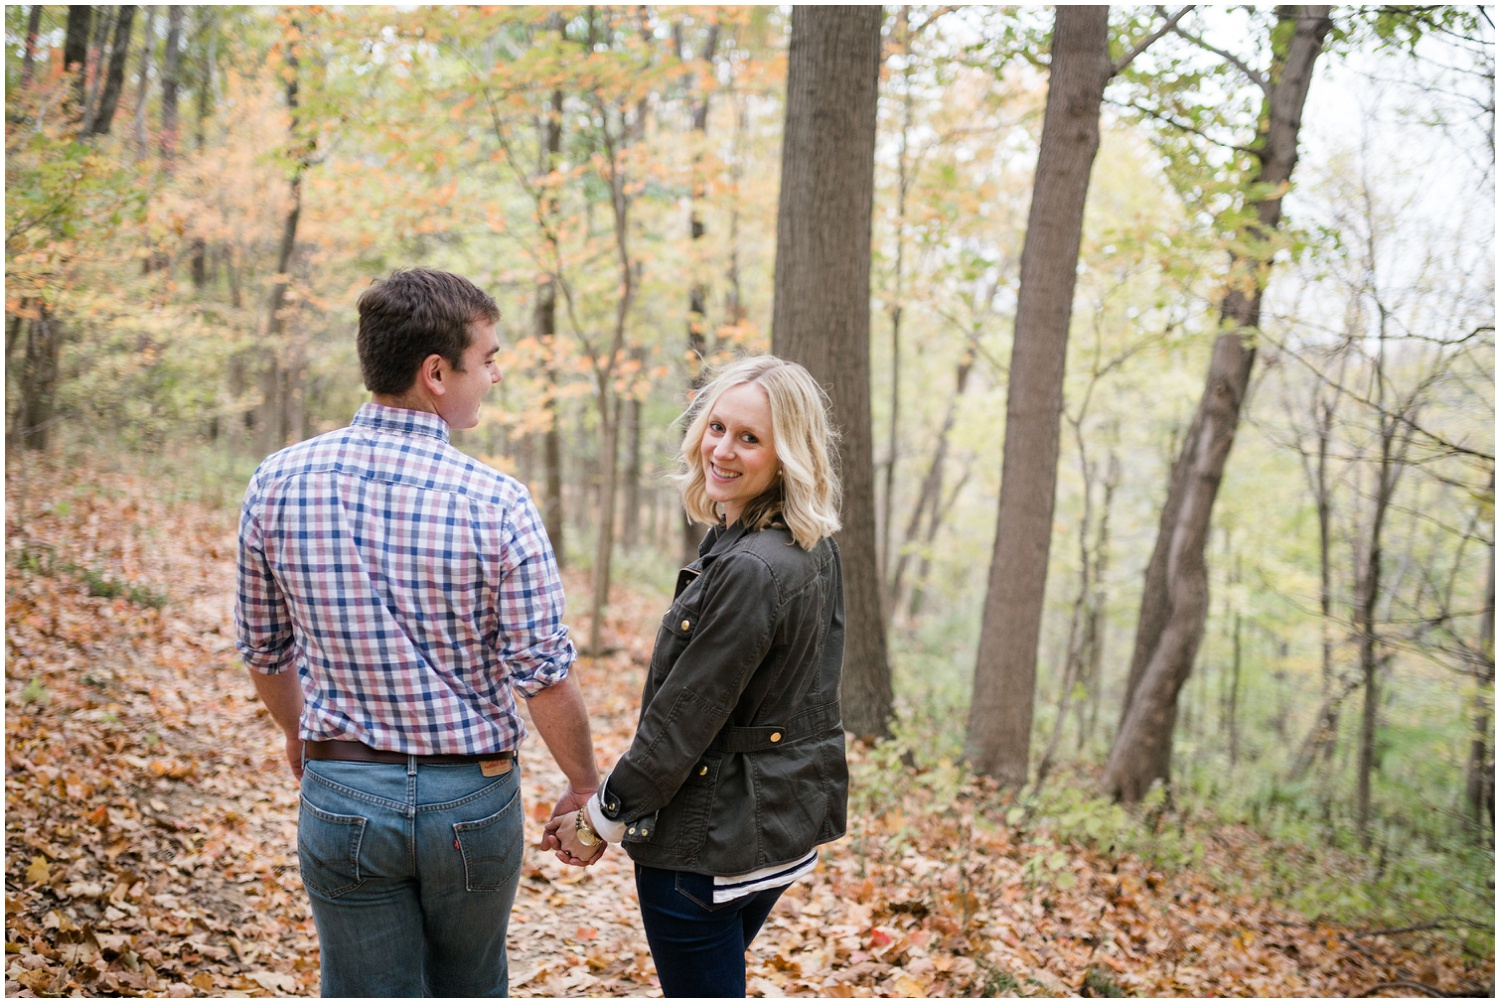 leah-reese-cherokee-park-engagement-session_0260.jpg